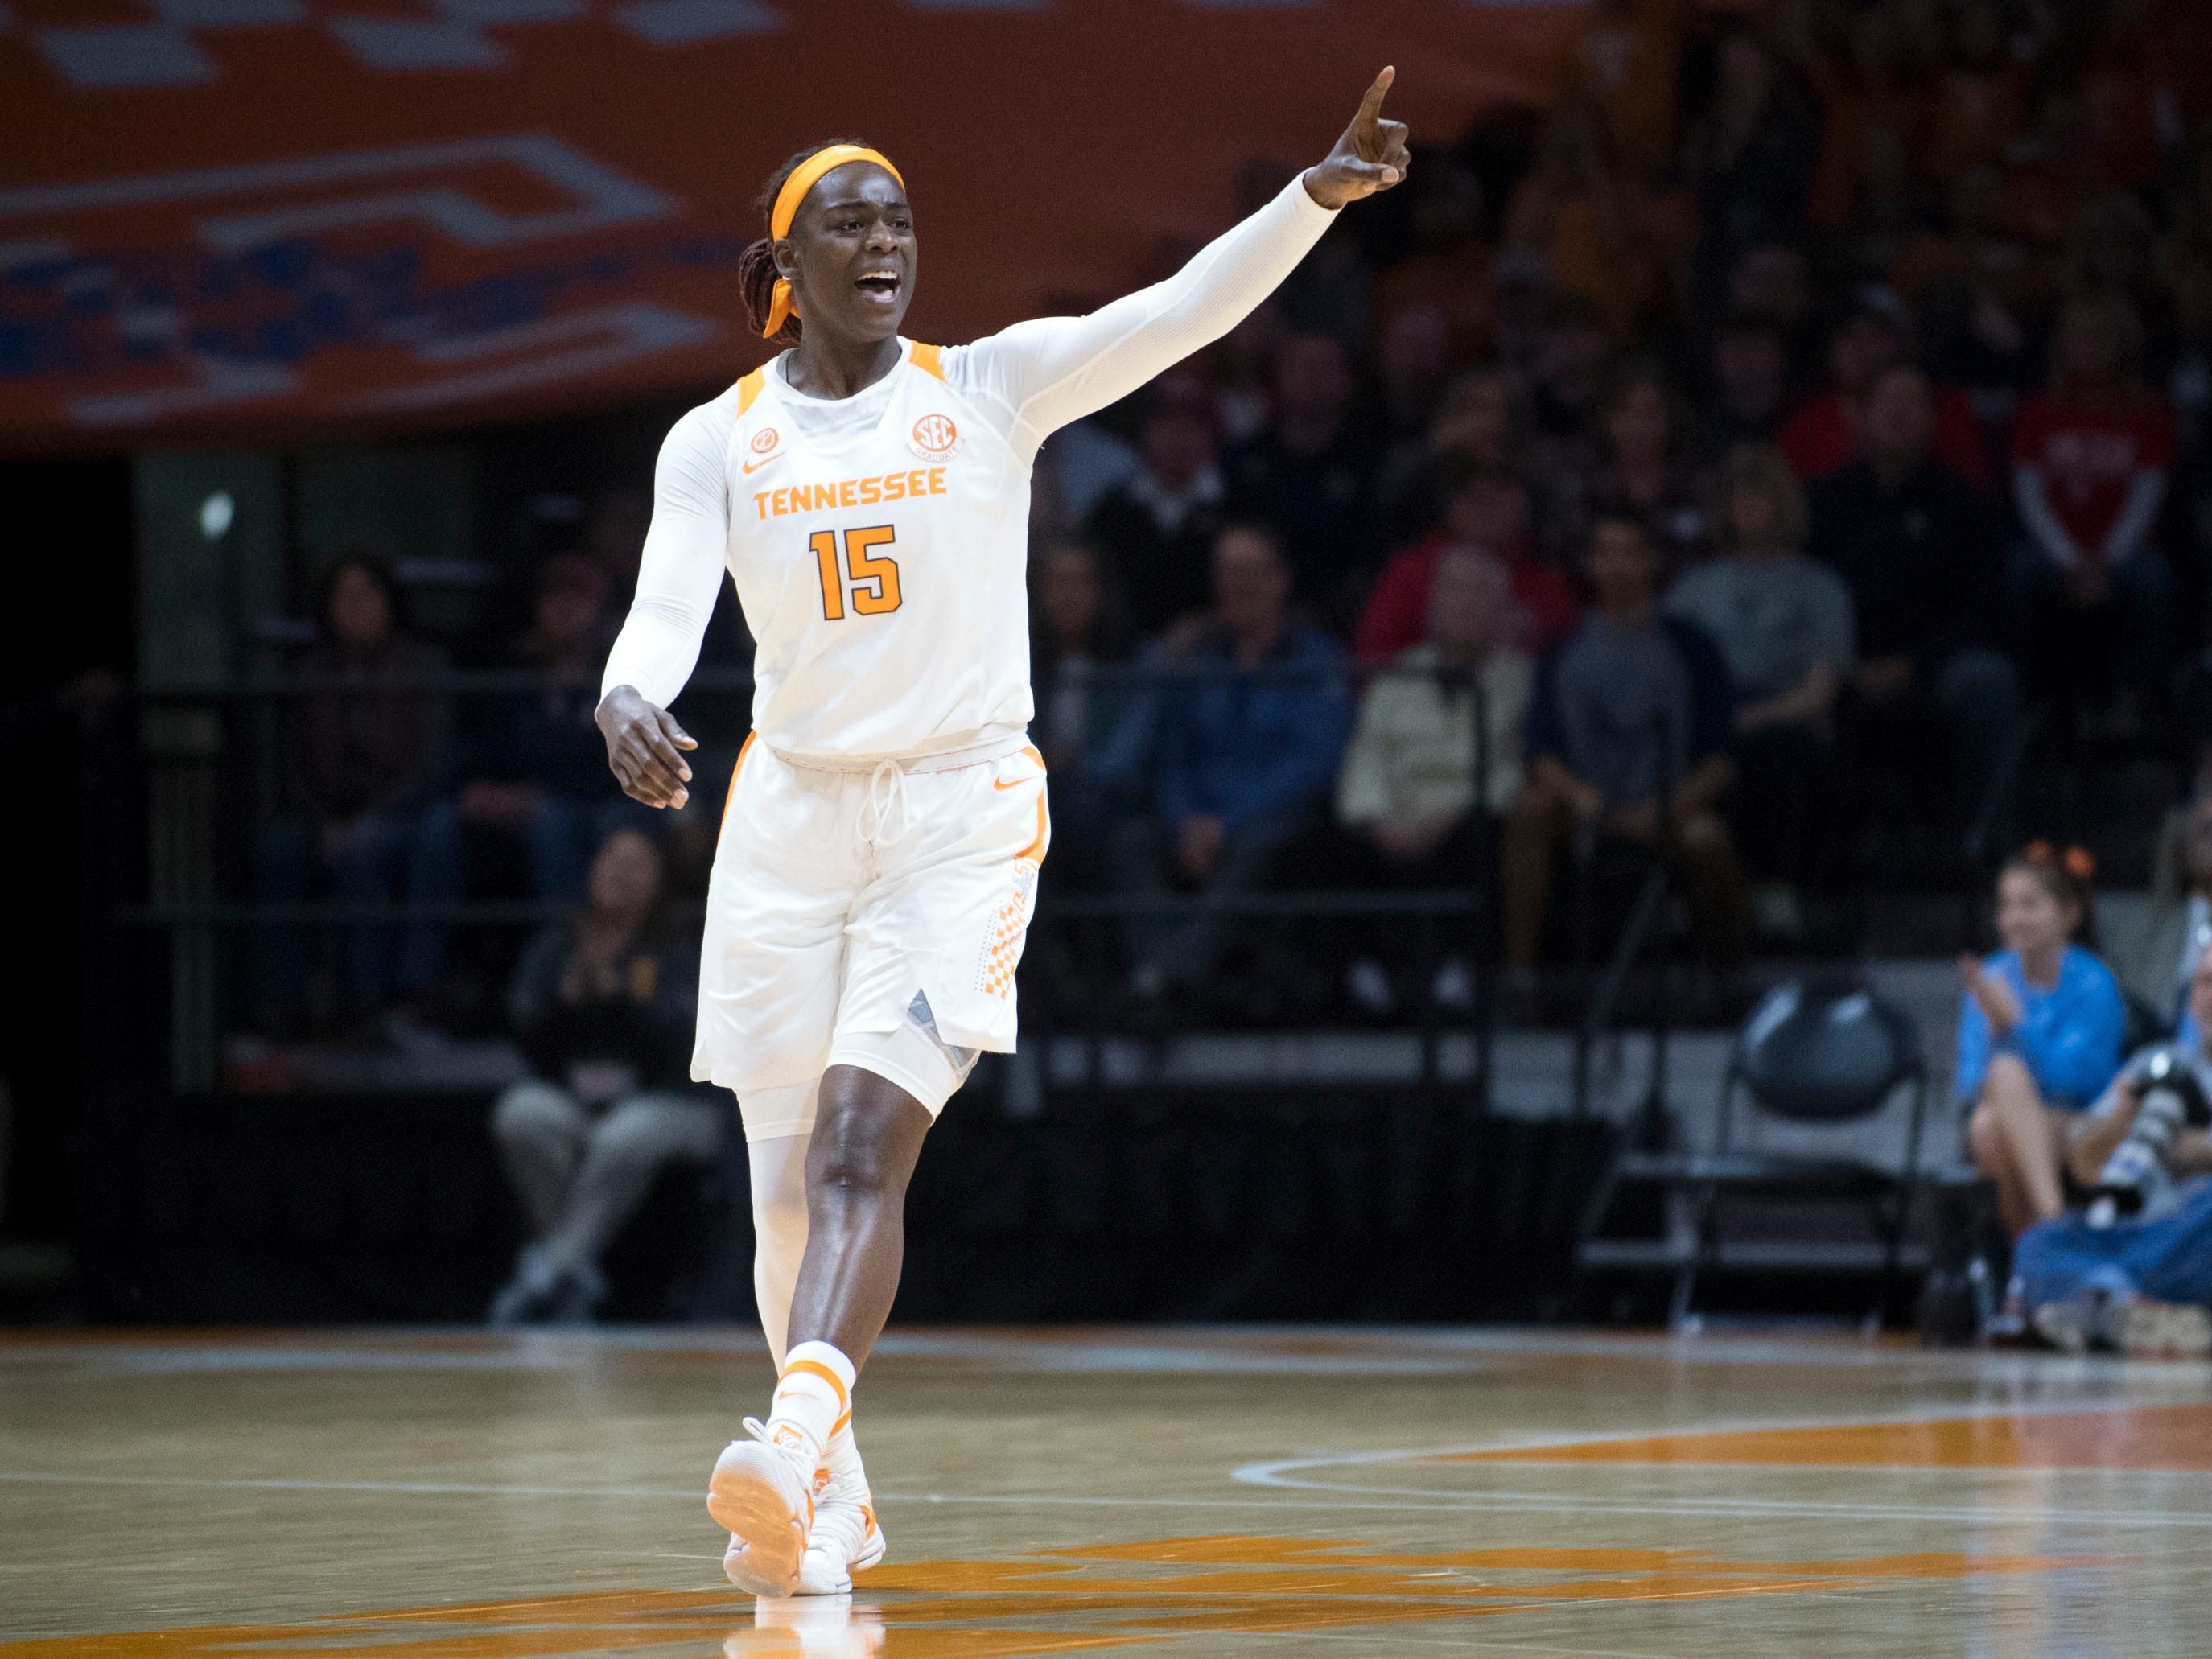 Tennessee's Cheridene Green (15) celebrates as the Lady Vols scores against Belmont on Sunday, December 30, 2018.